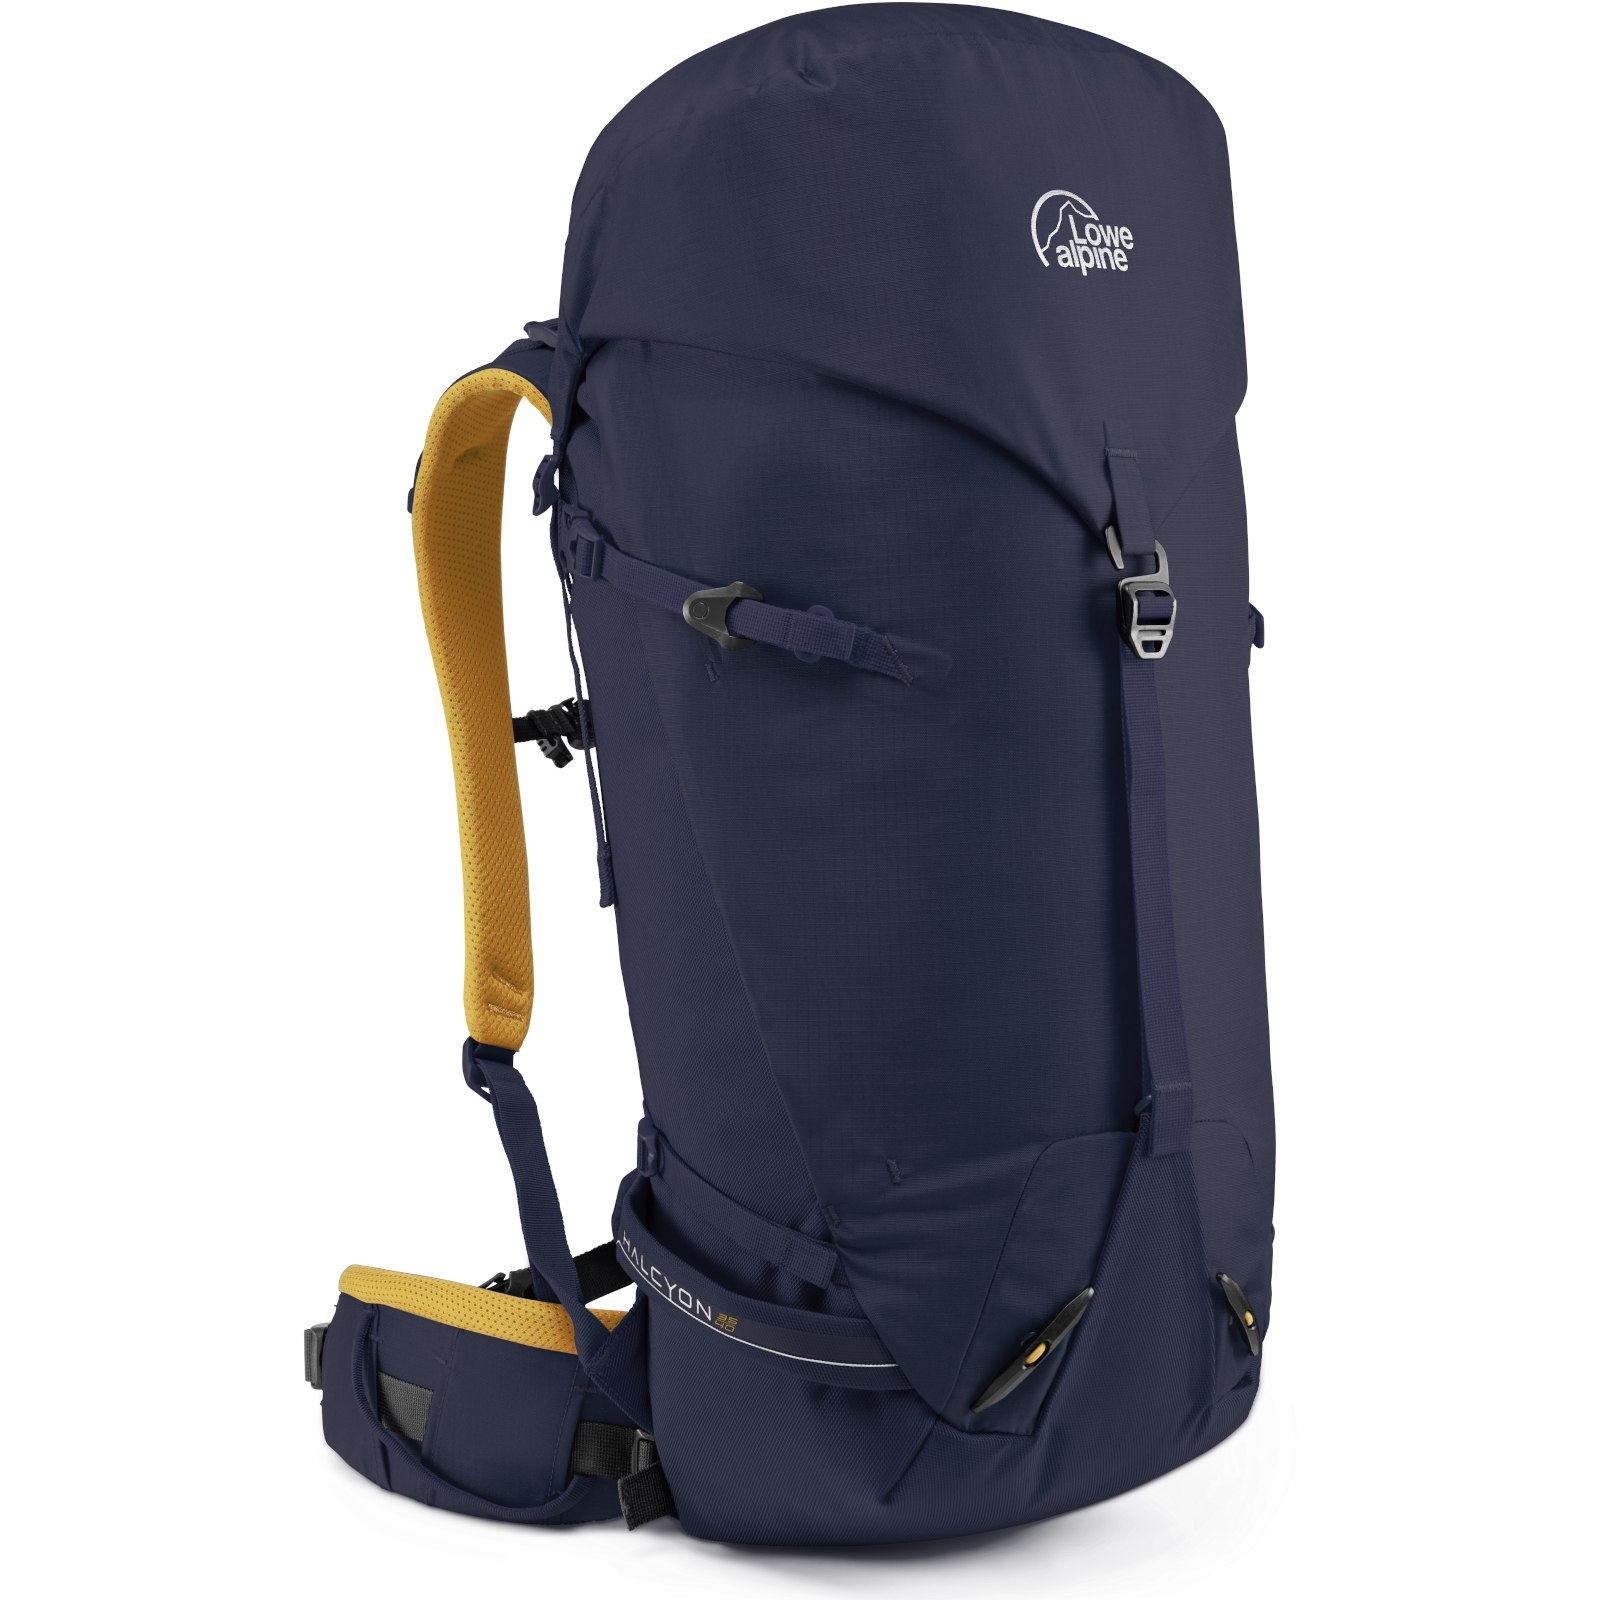 Lowe Alpine Halcyon 35:40 Small Backpack - Navy